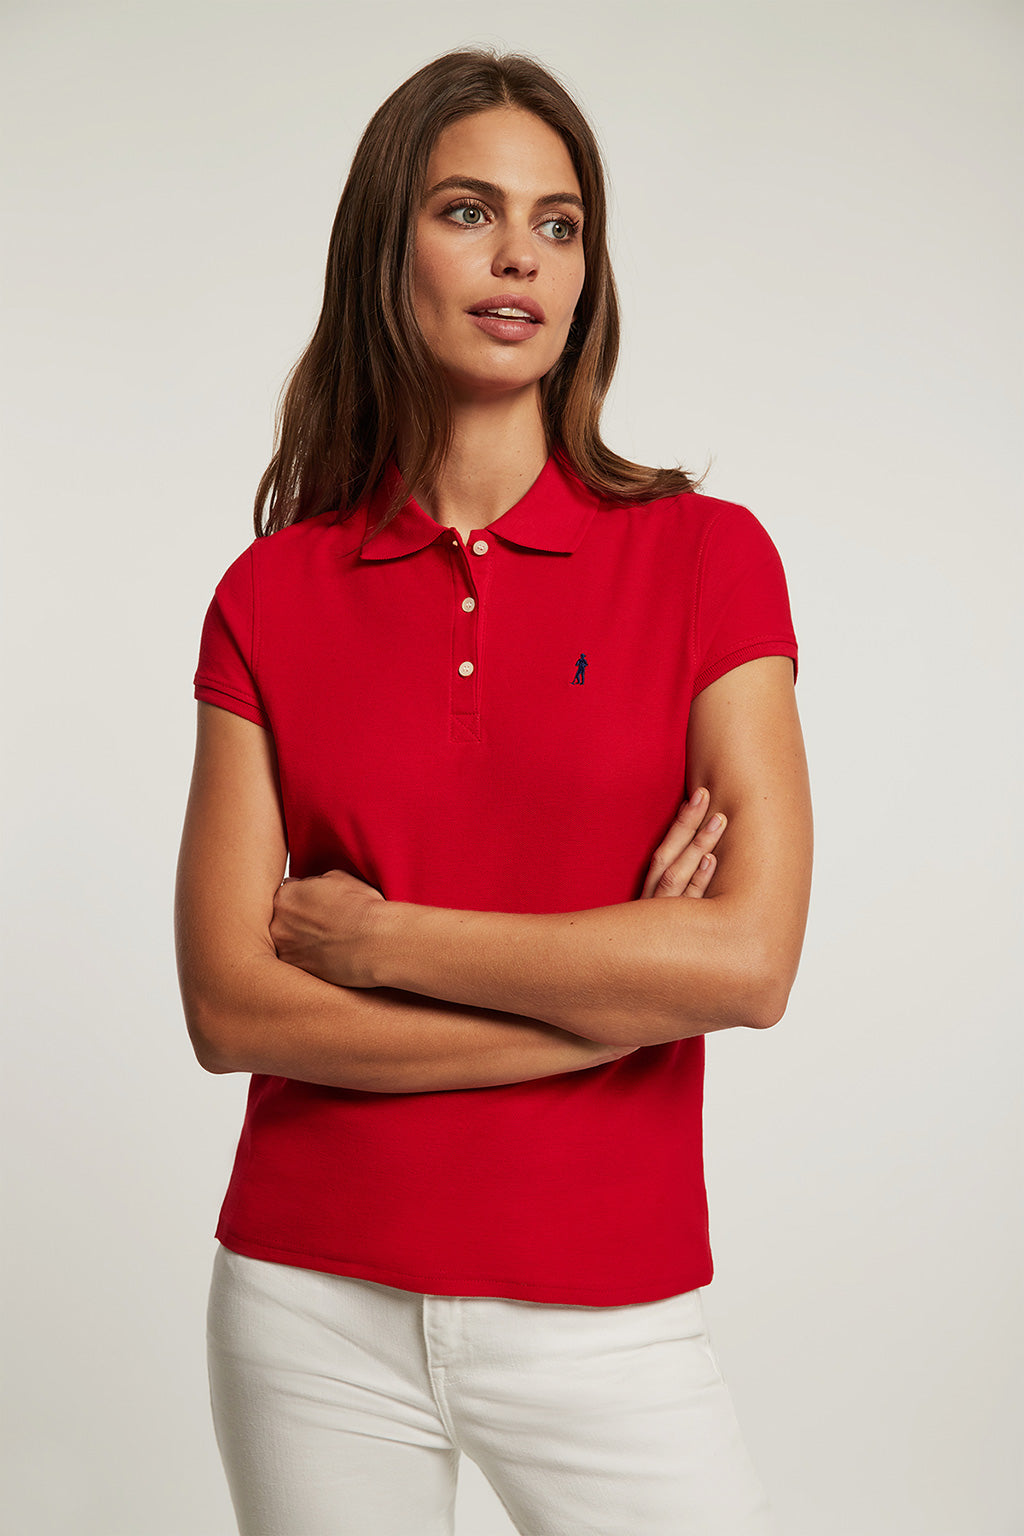 Red polo shirt with embroidery